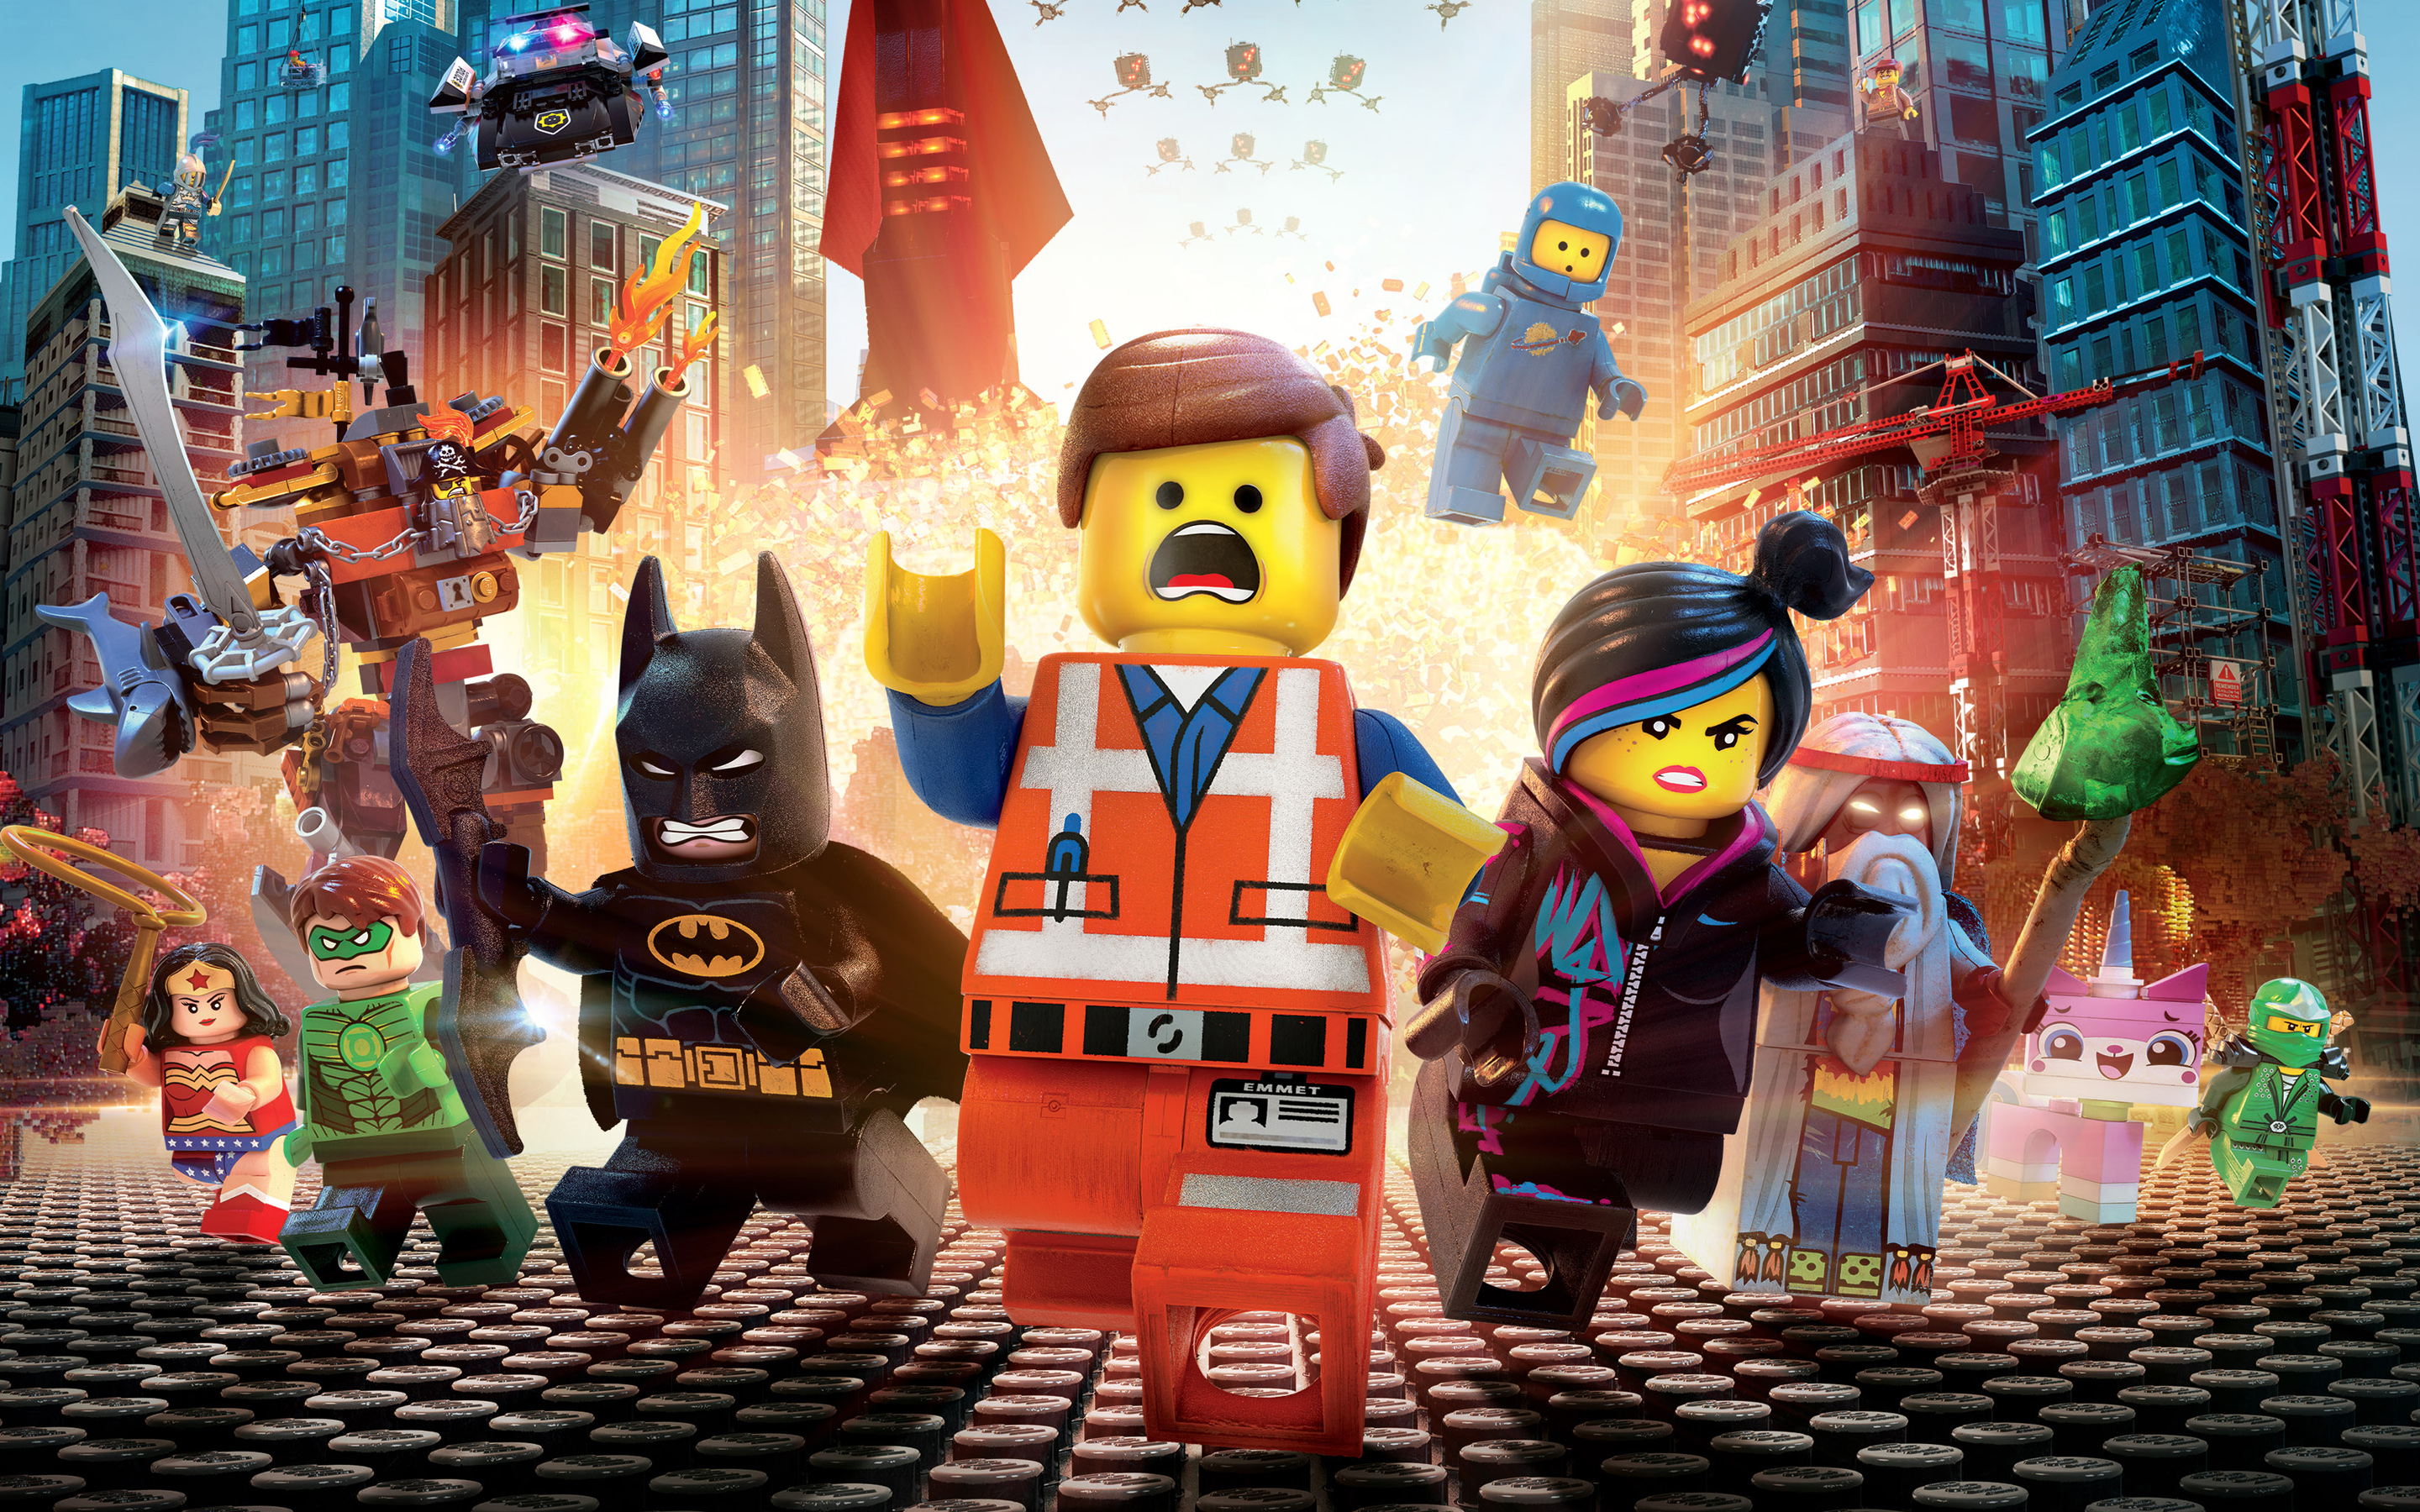 The Lego Movie debuted at number one last weekend. (Photo: Warner Bros. Studios)